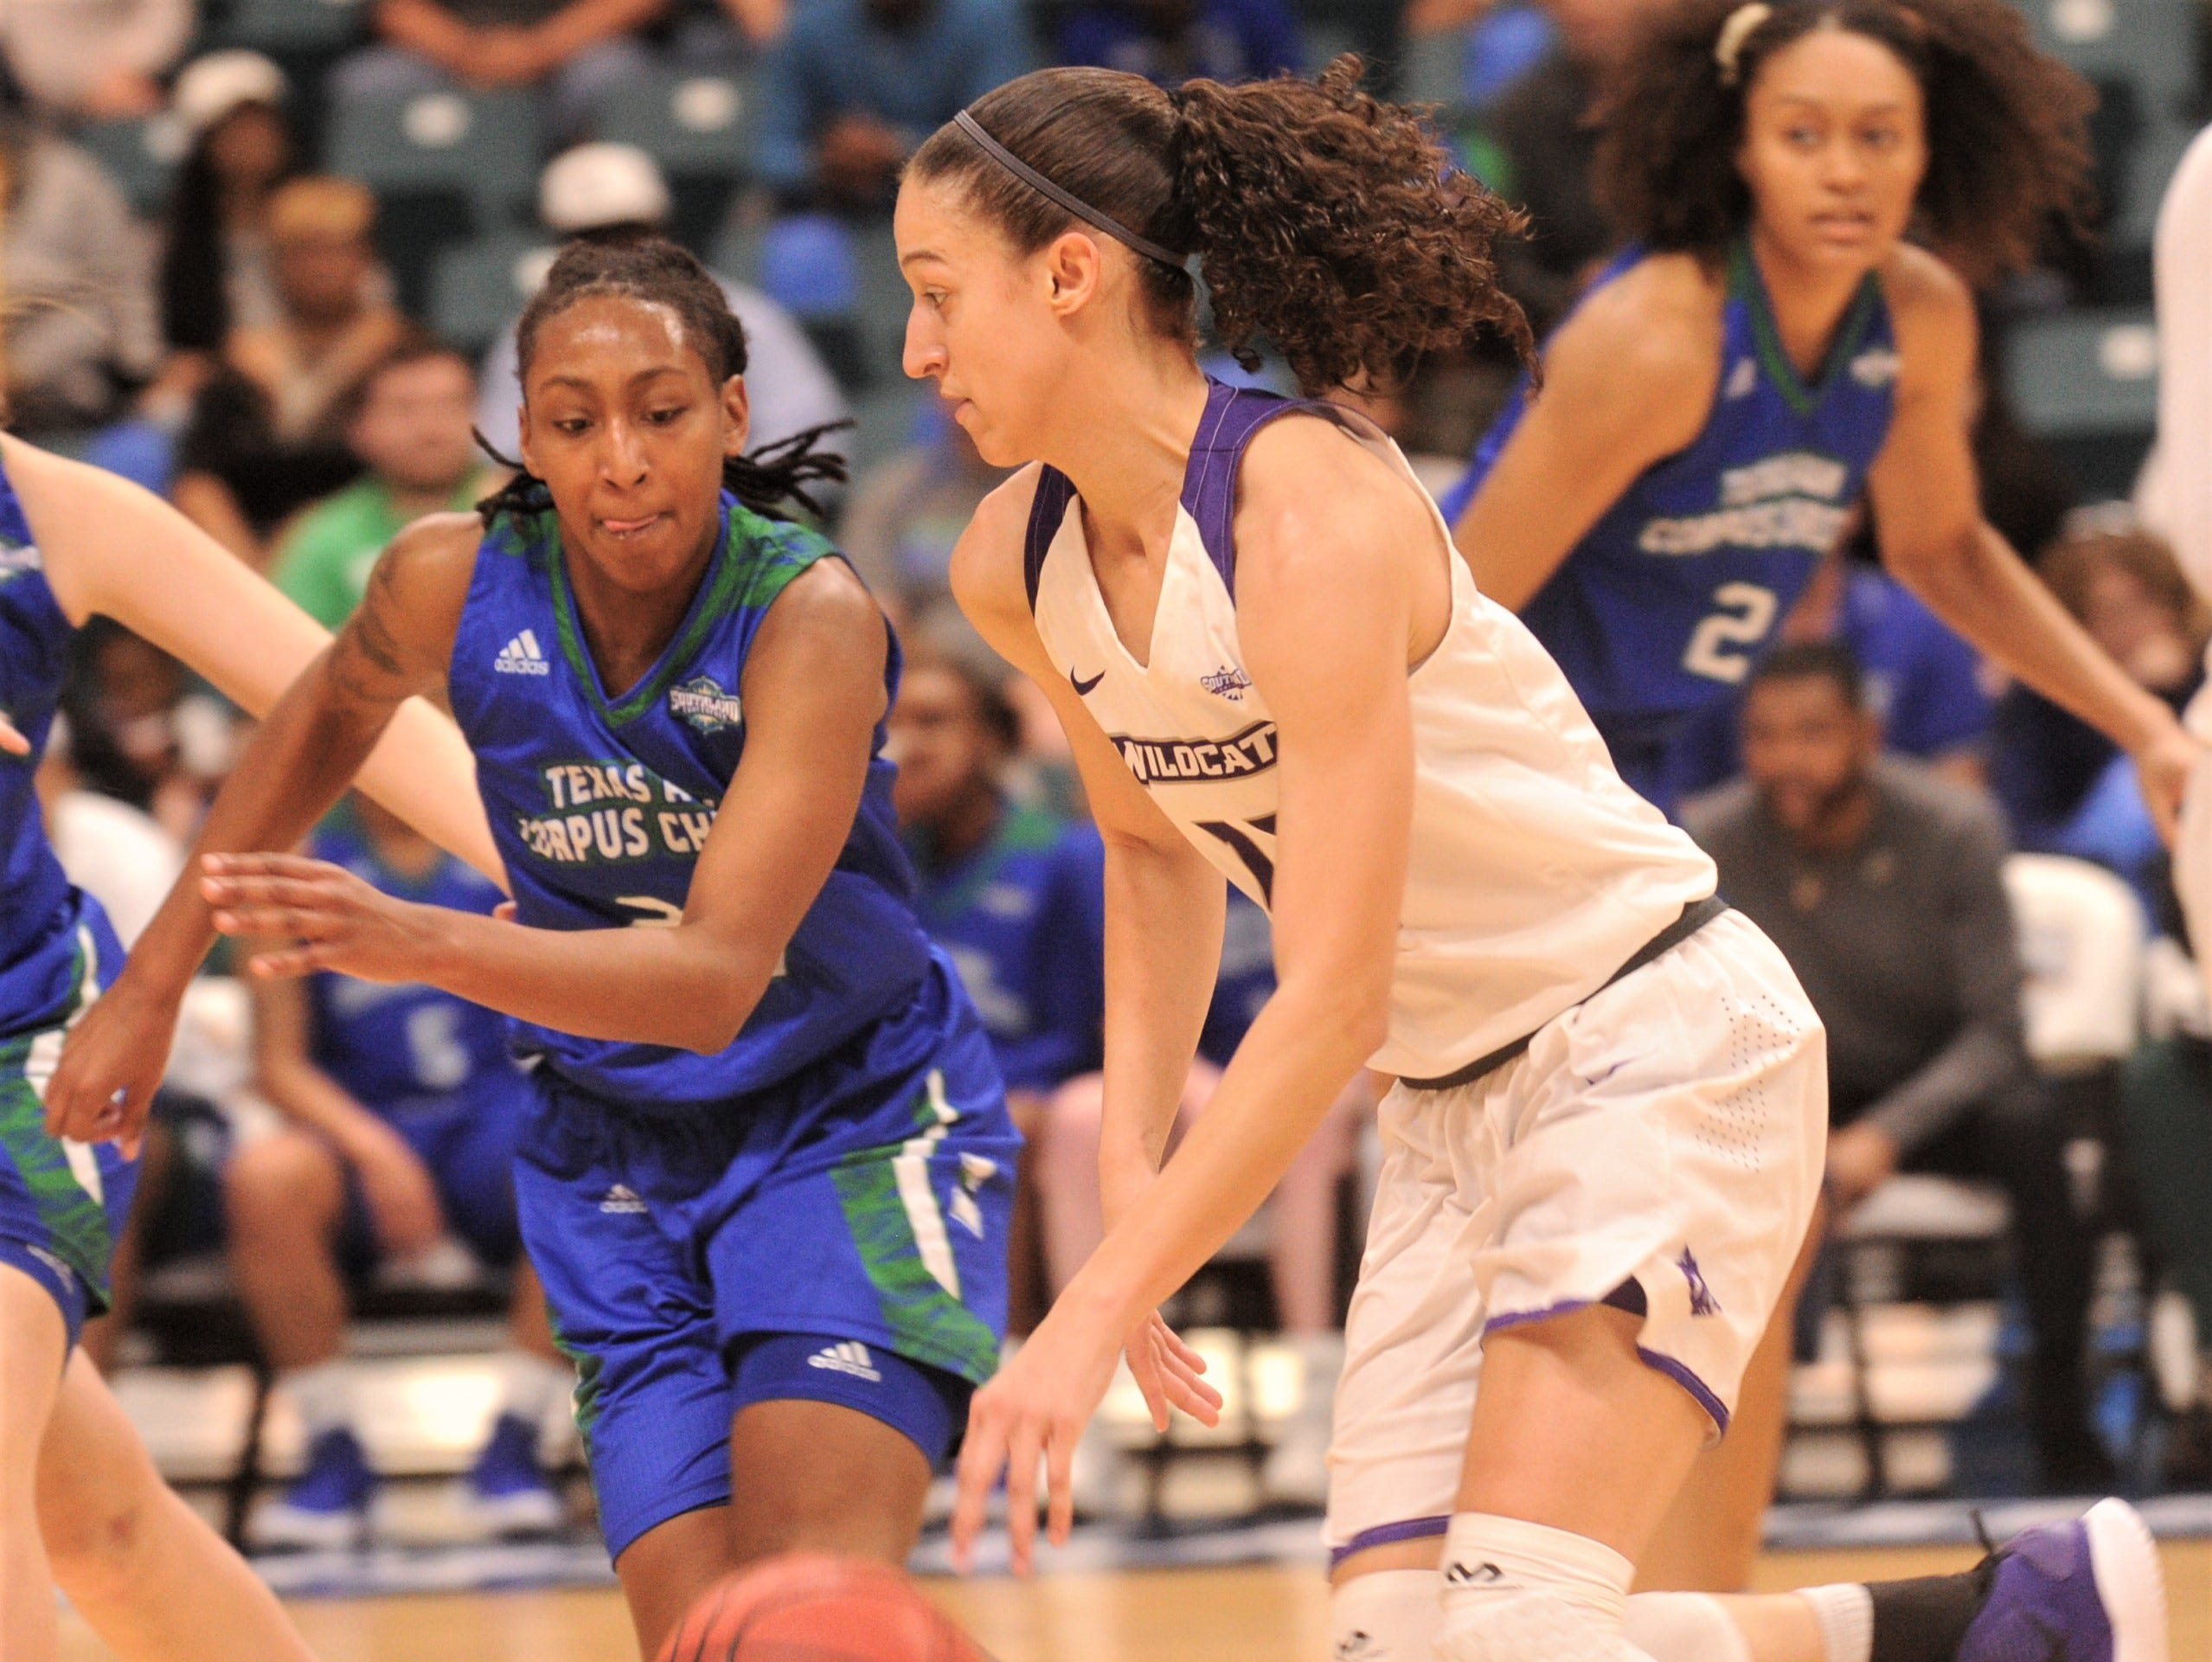 ACU's Sara Williamson brings the ball up court as a Texas A&M-Corpus Christi player defends. ACU beat the Islanders 69-68 in the Southland Conference women's tournament championship game Sunday, March 17, 2019, at the Merrell Center in Katy.